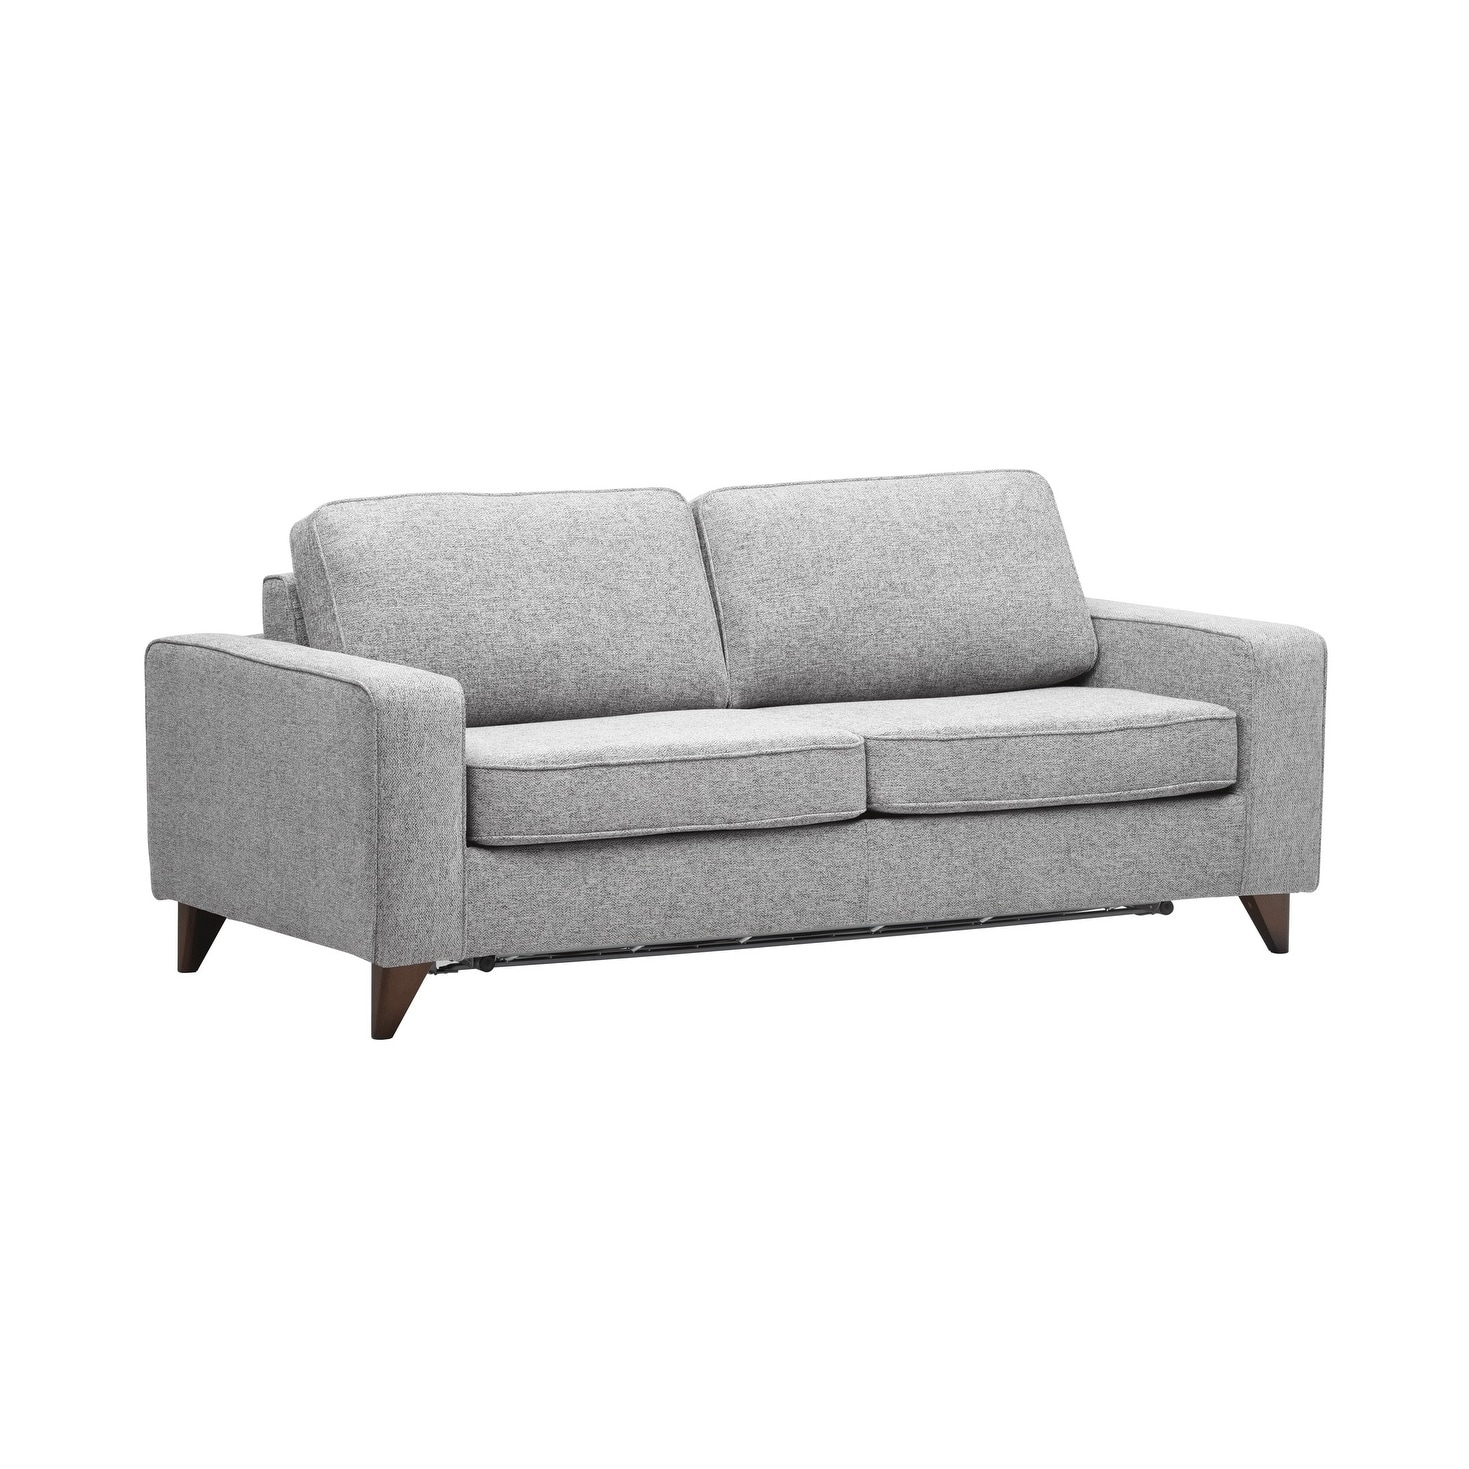 Luca Home Modern Grayson Sofa Bed Free Shipping Today 20228387